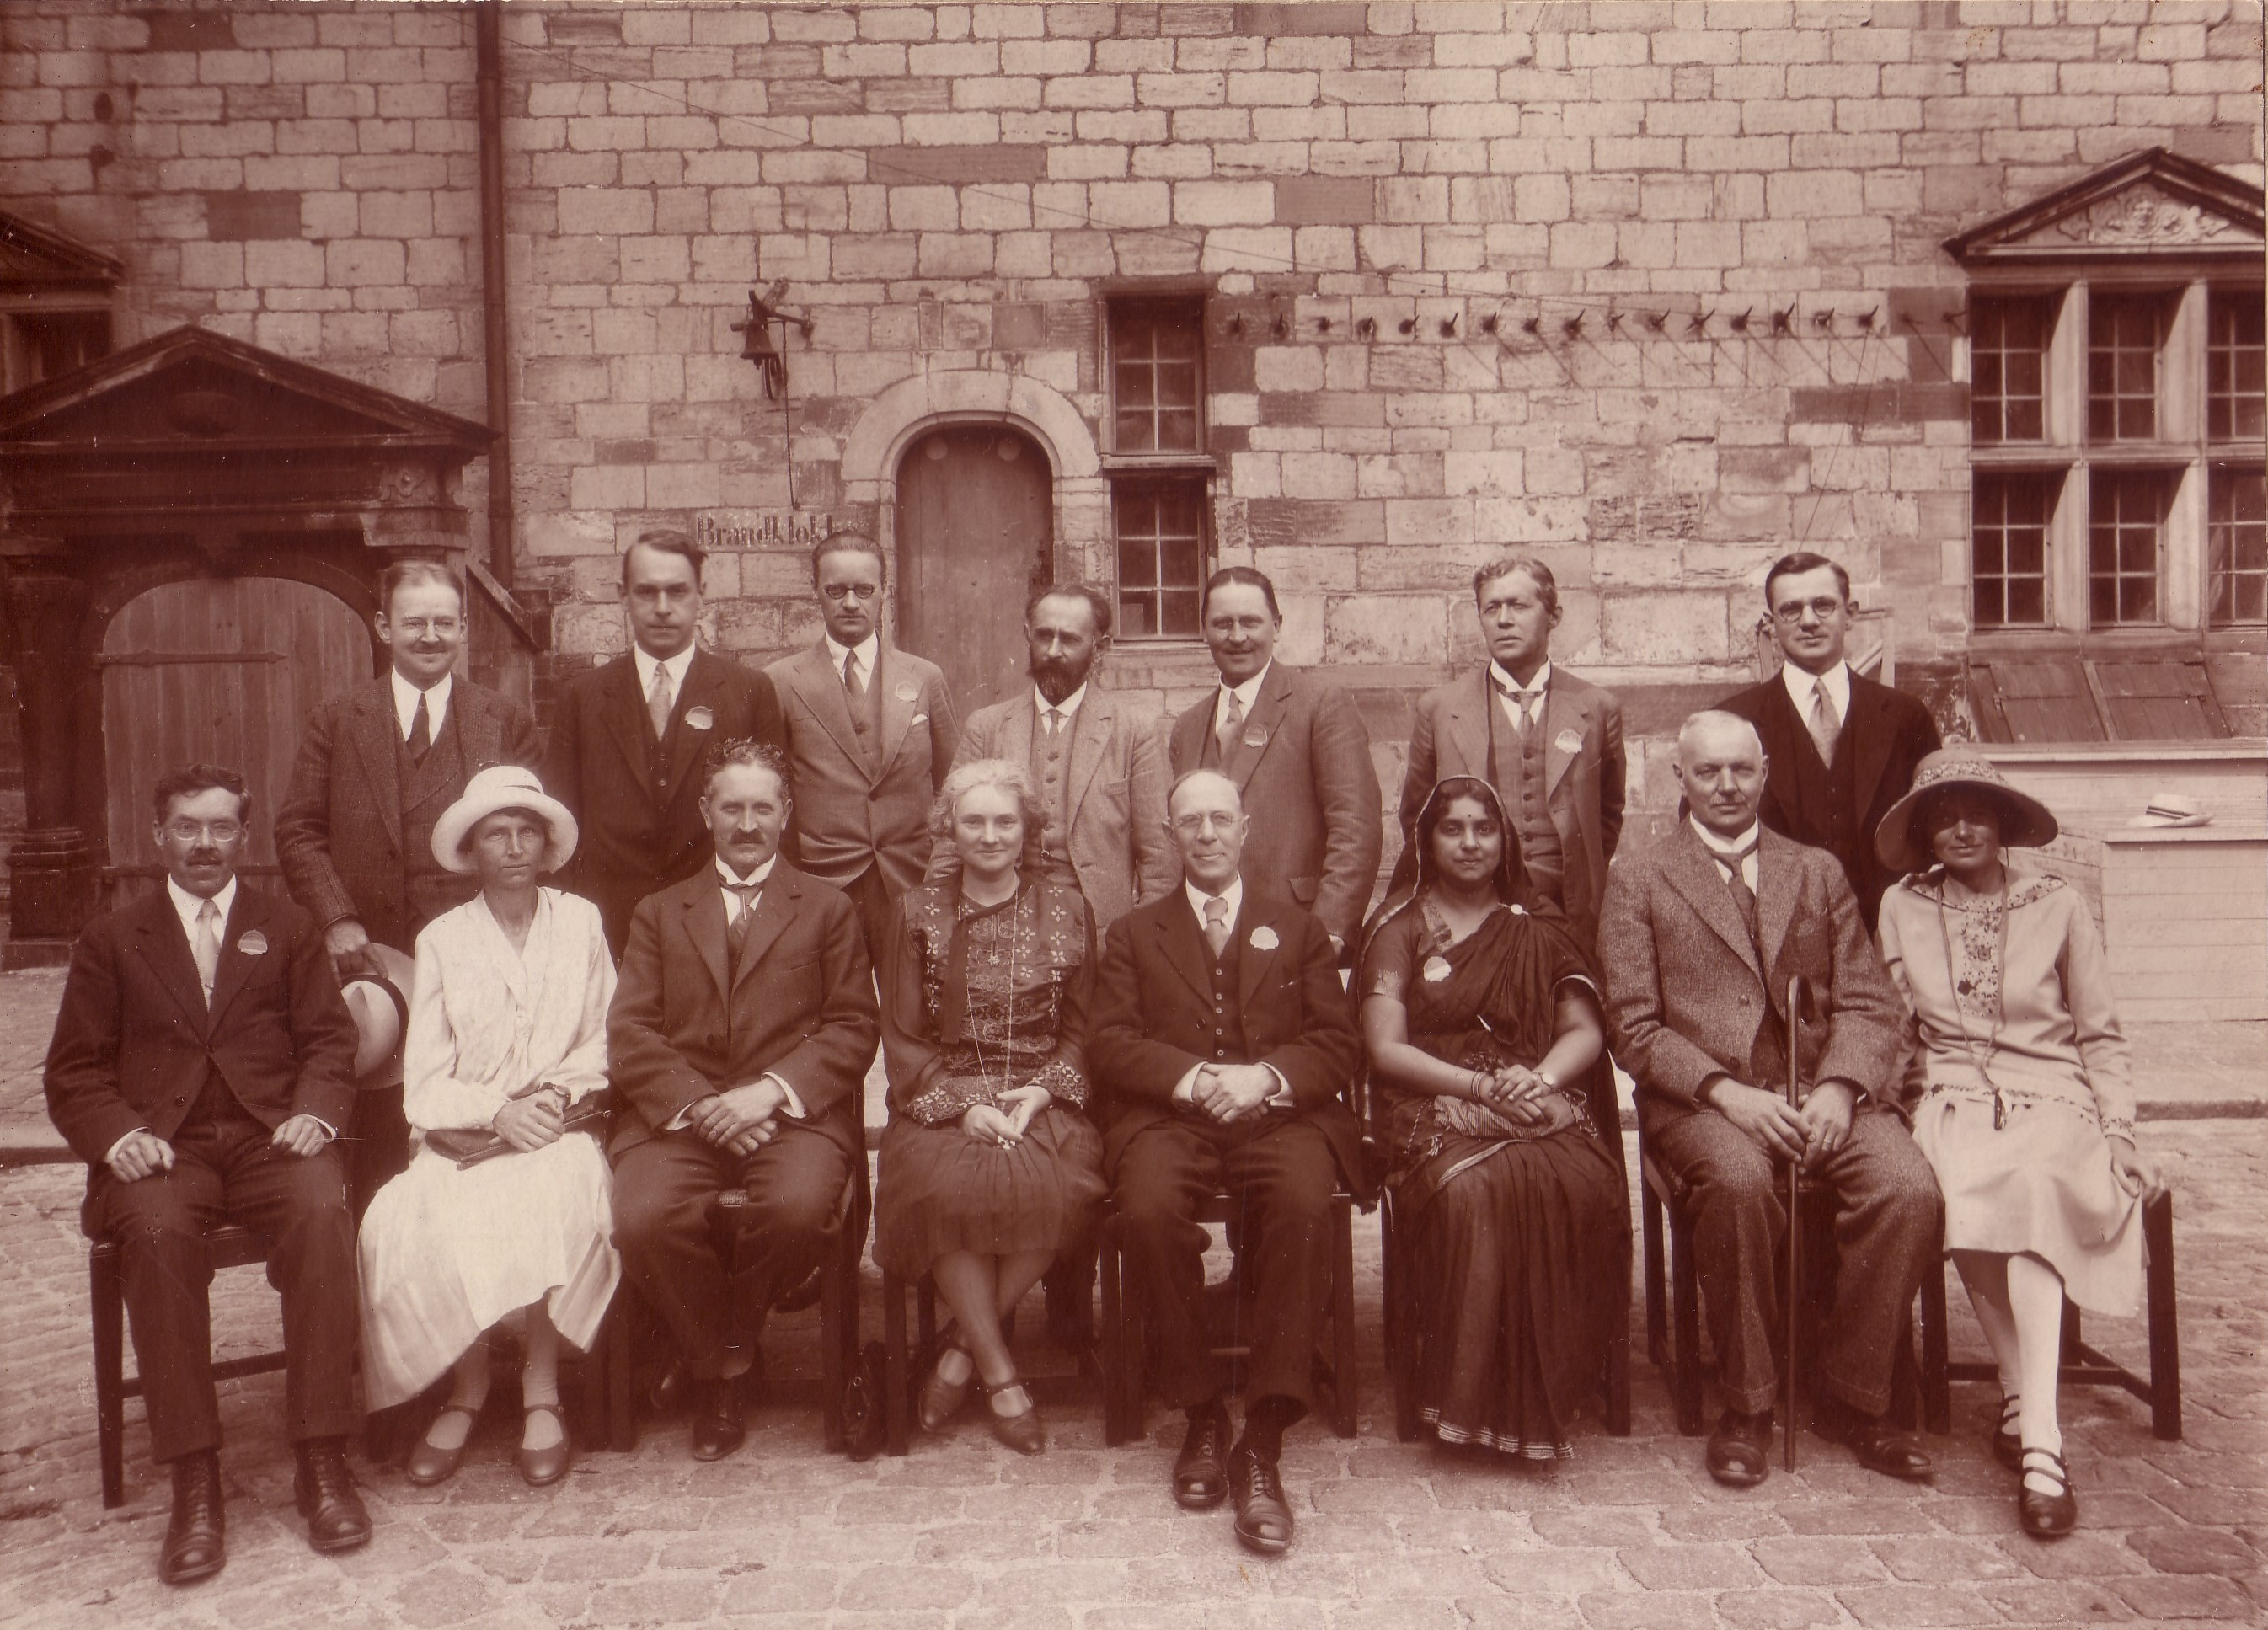 Photograph of members of the WEF